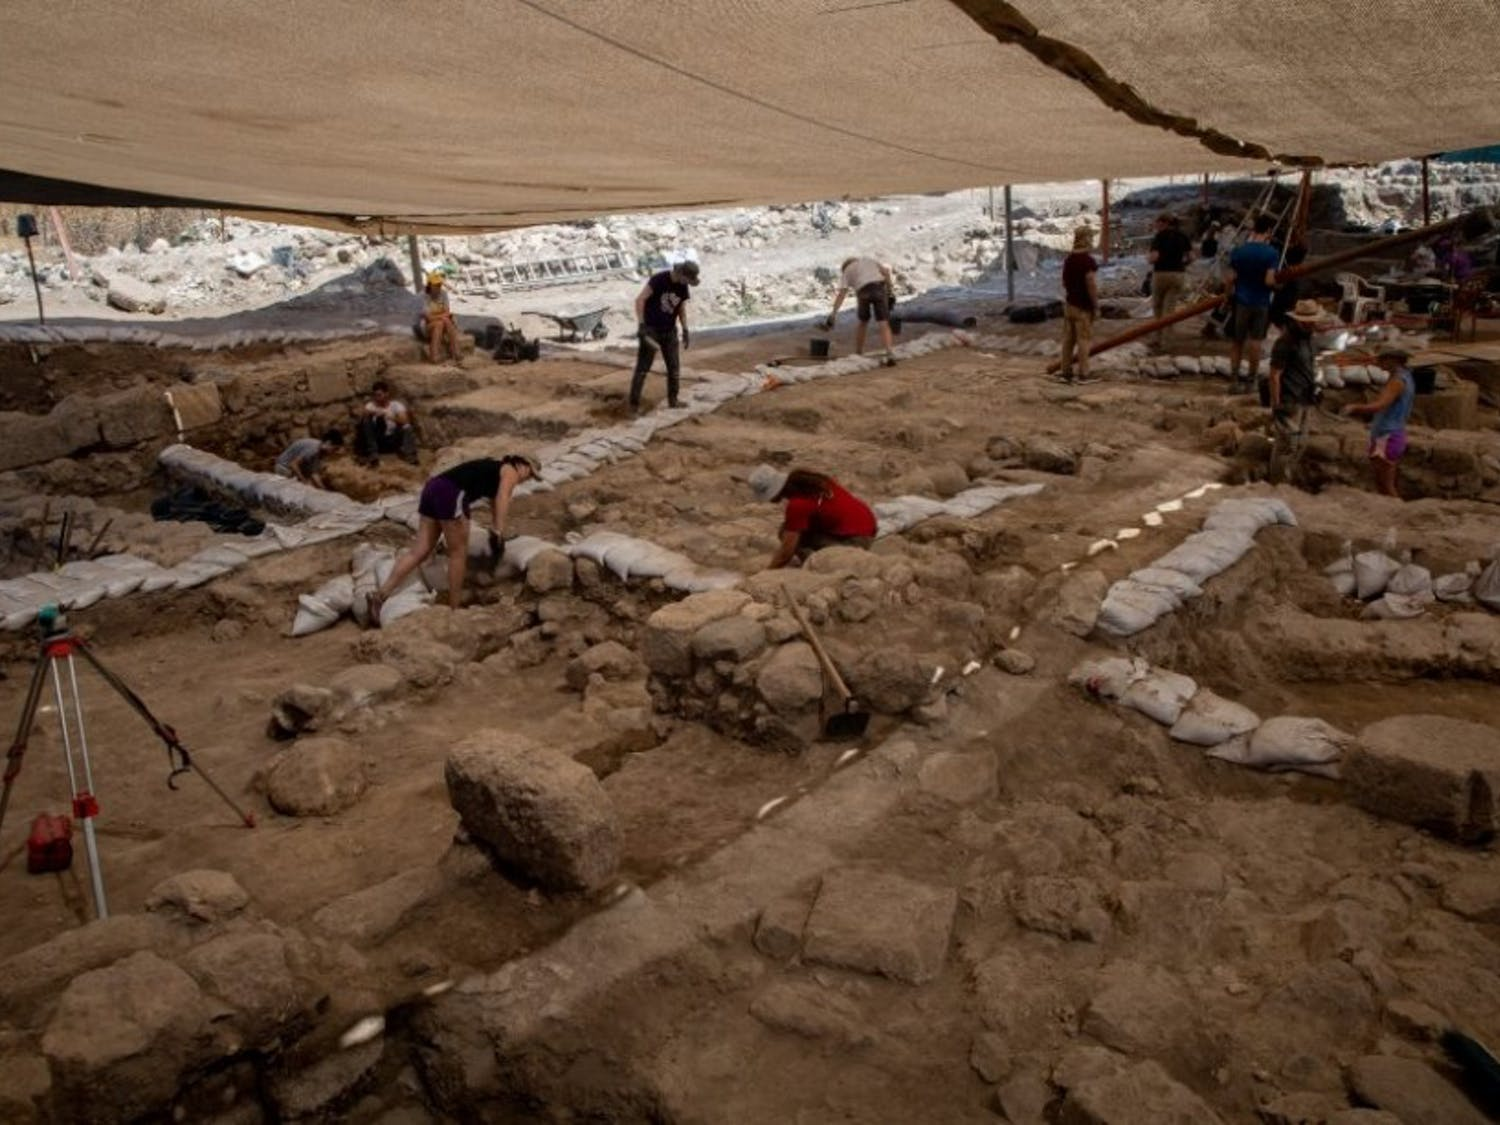 The dig site at Huqoq. (Photo by Adriana Diaz) Photo courtesy of UNC Media Hub